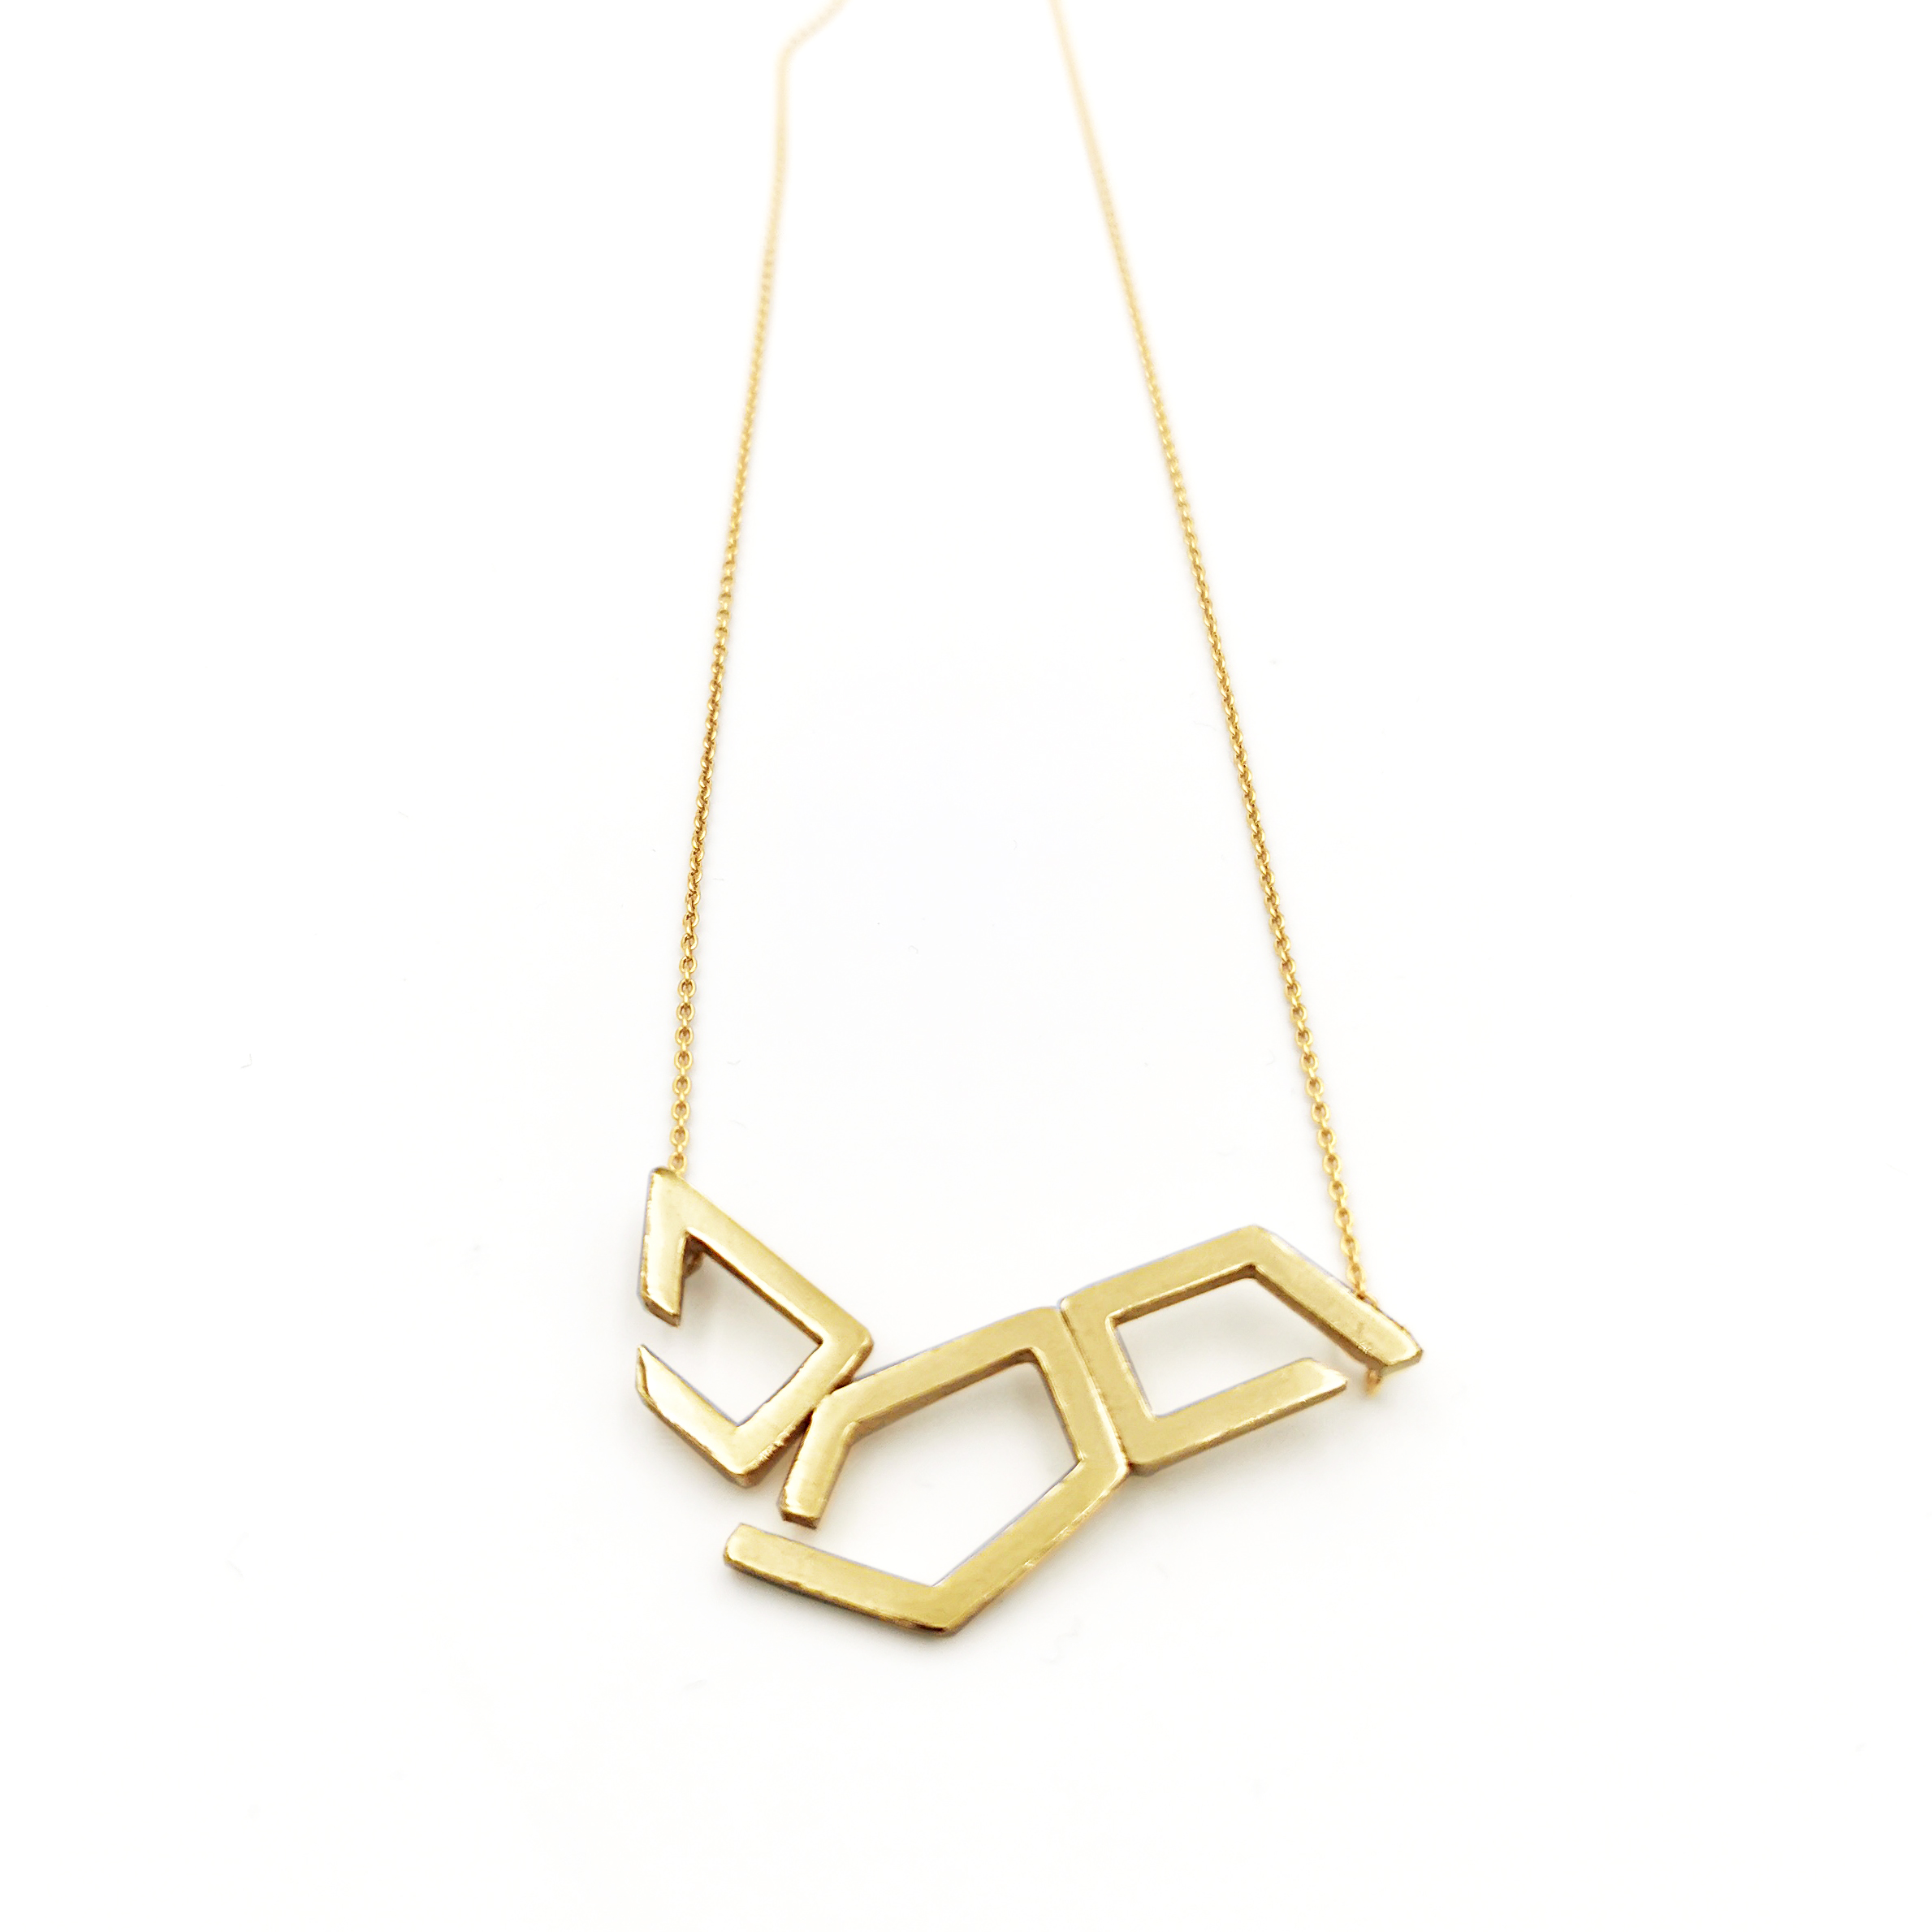 Necklace | Gold Plated Sterling Silver Jewellery